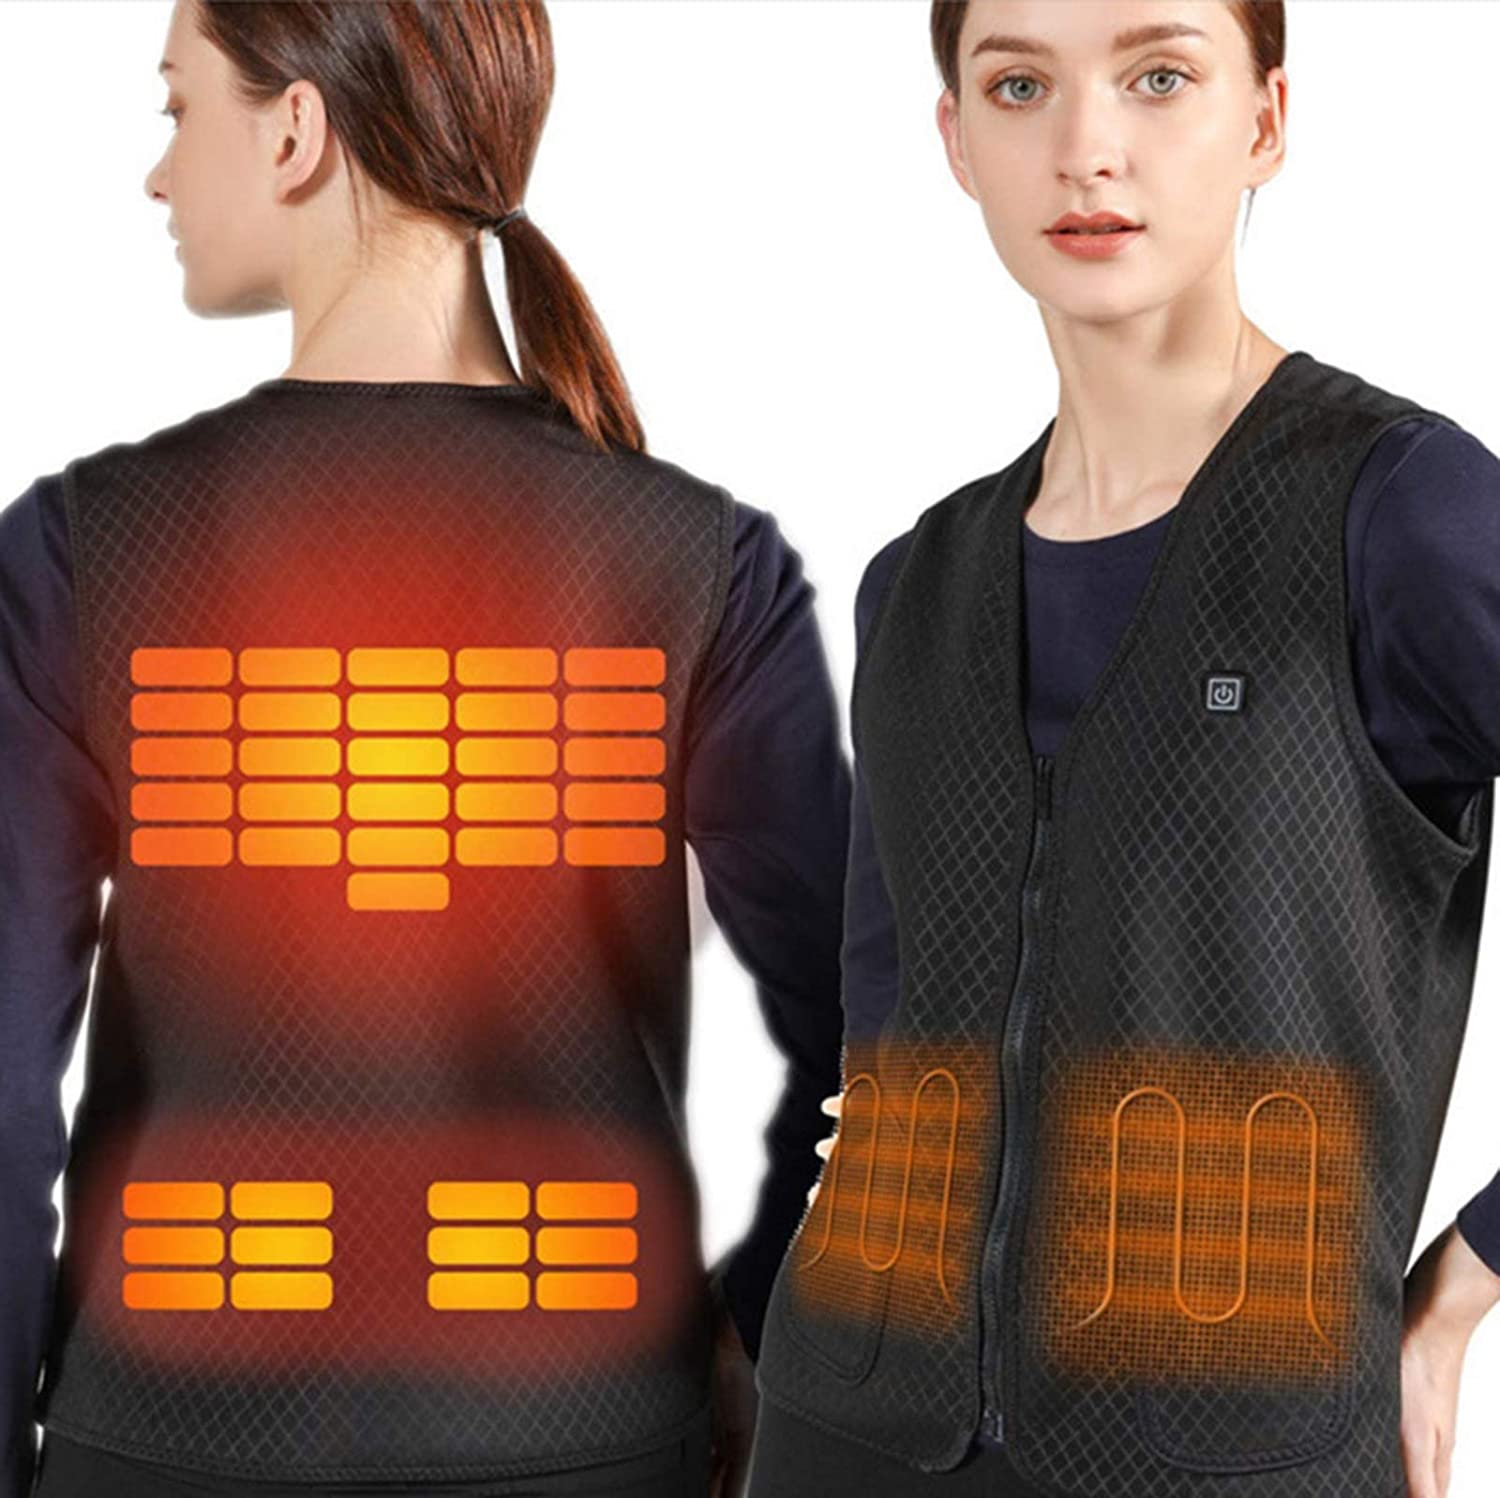 Zobir Electric Heating Vest for Man/Woman,Washable USB Charging Heated Jacket Winter Warm Jacket,for Winter Outdoor Activity Hiking Hunting Fishing Camping